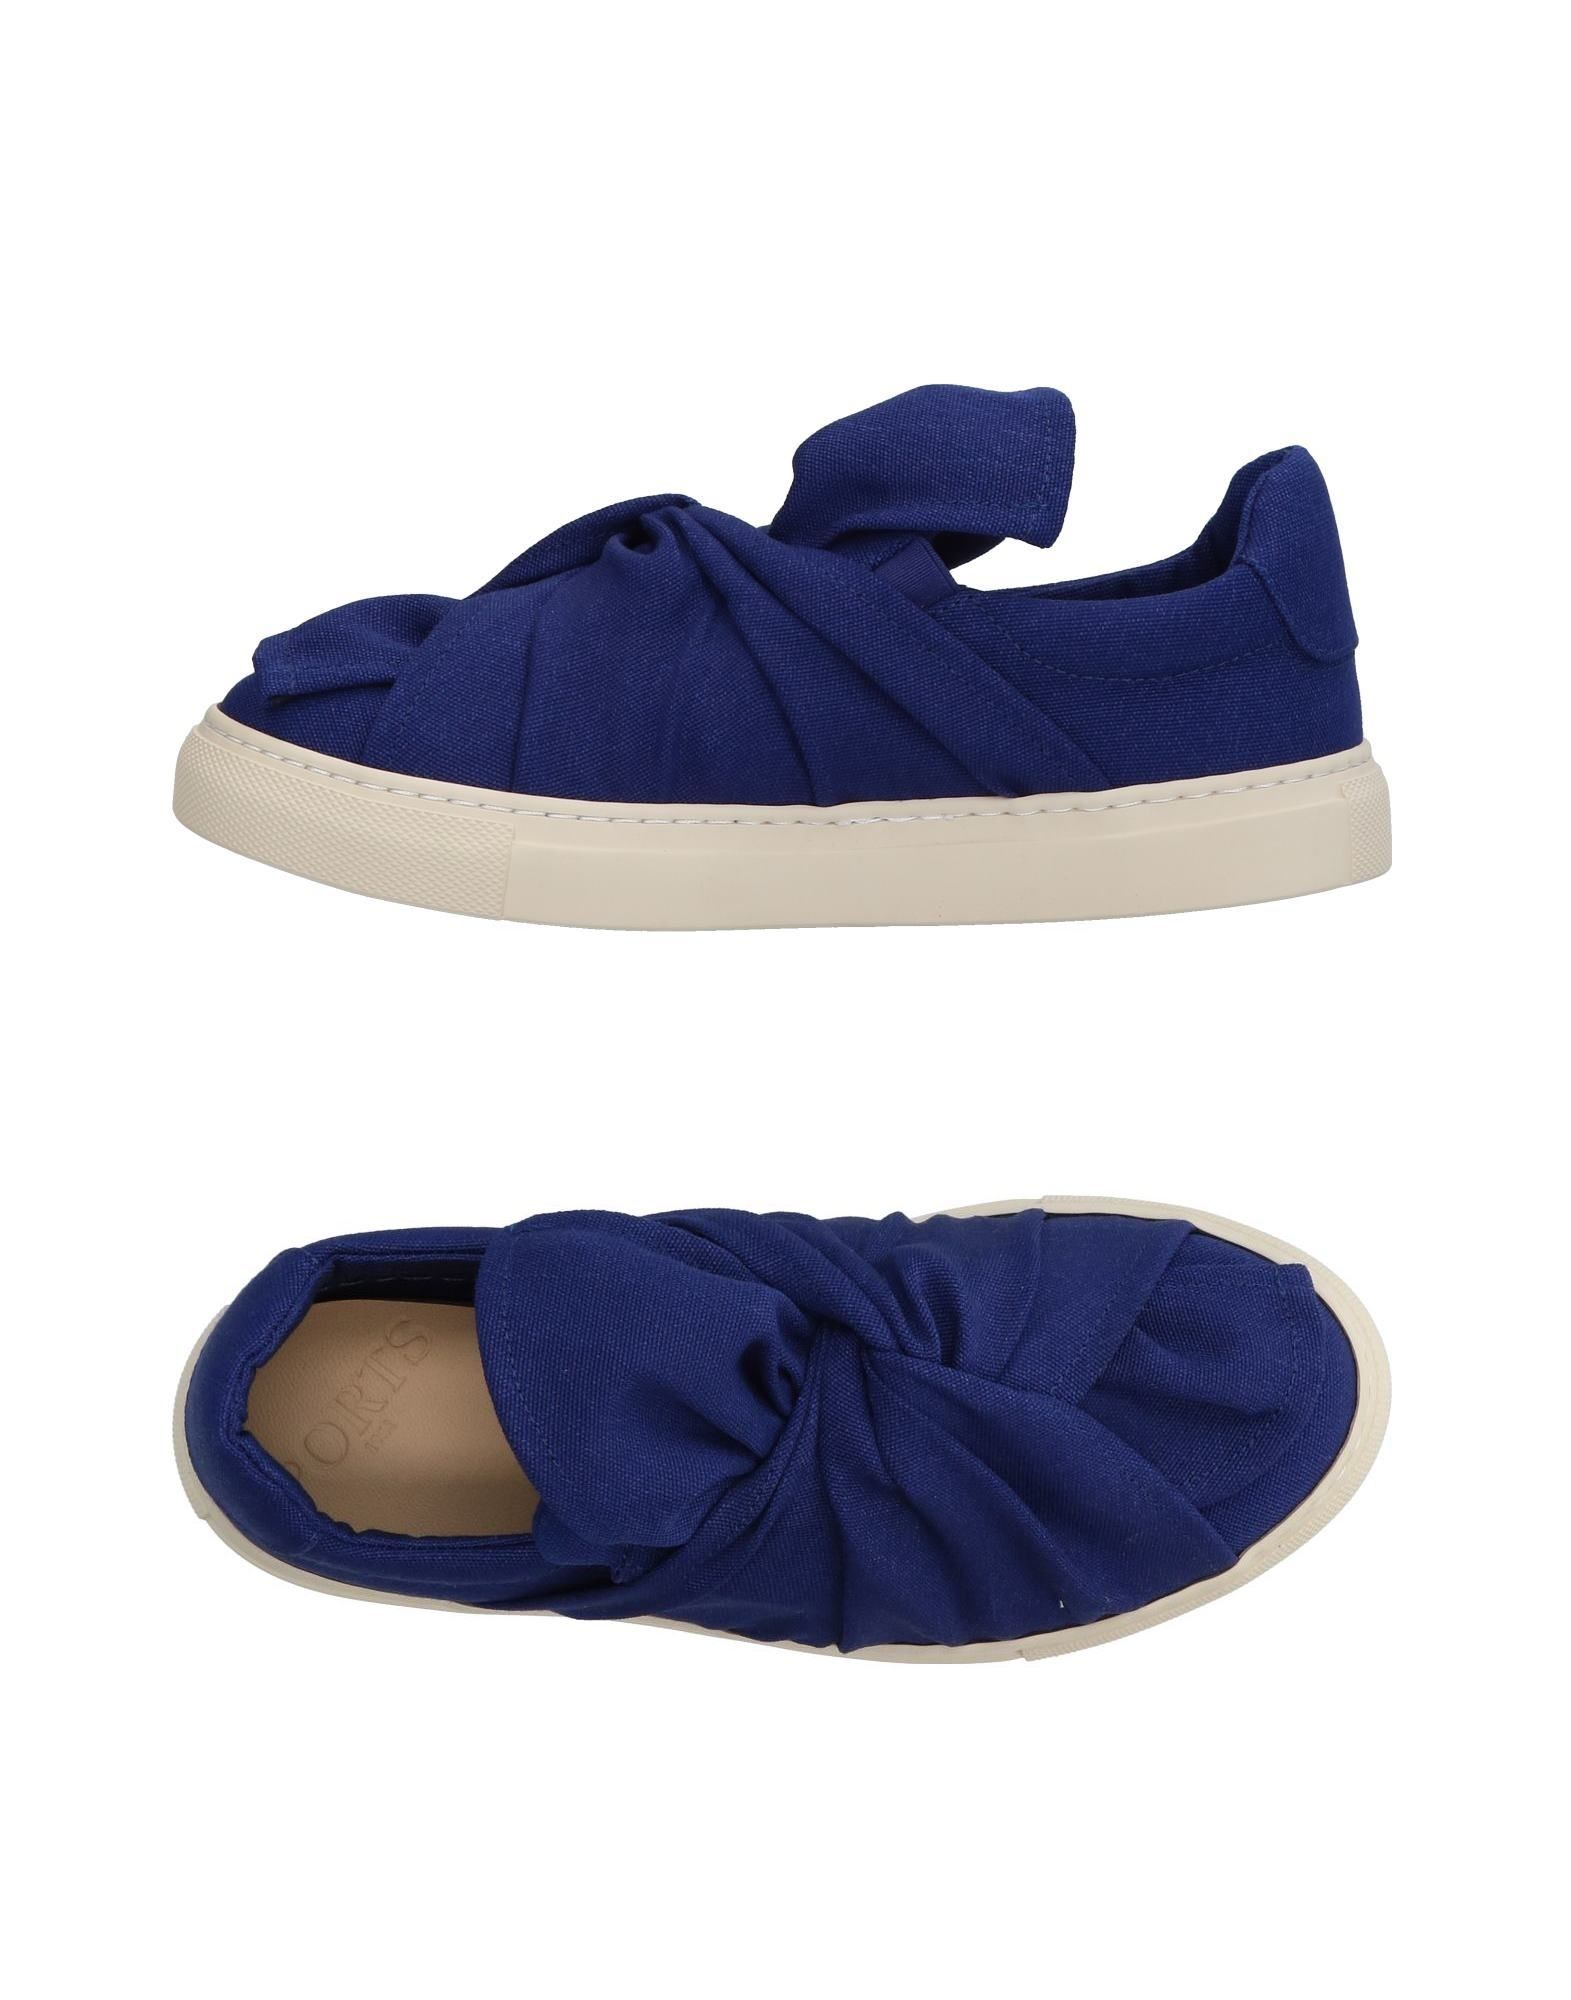 Sneakers Ports 1961 Donna - 11358570DC